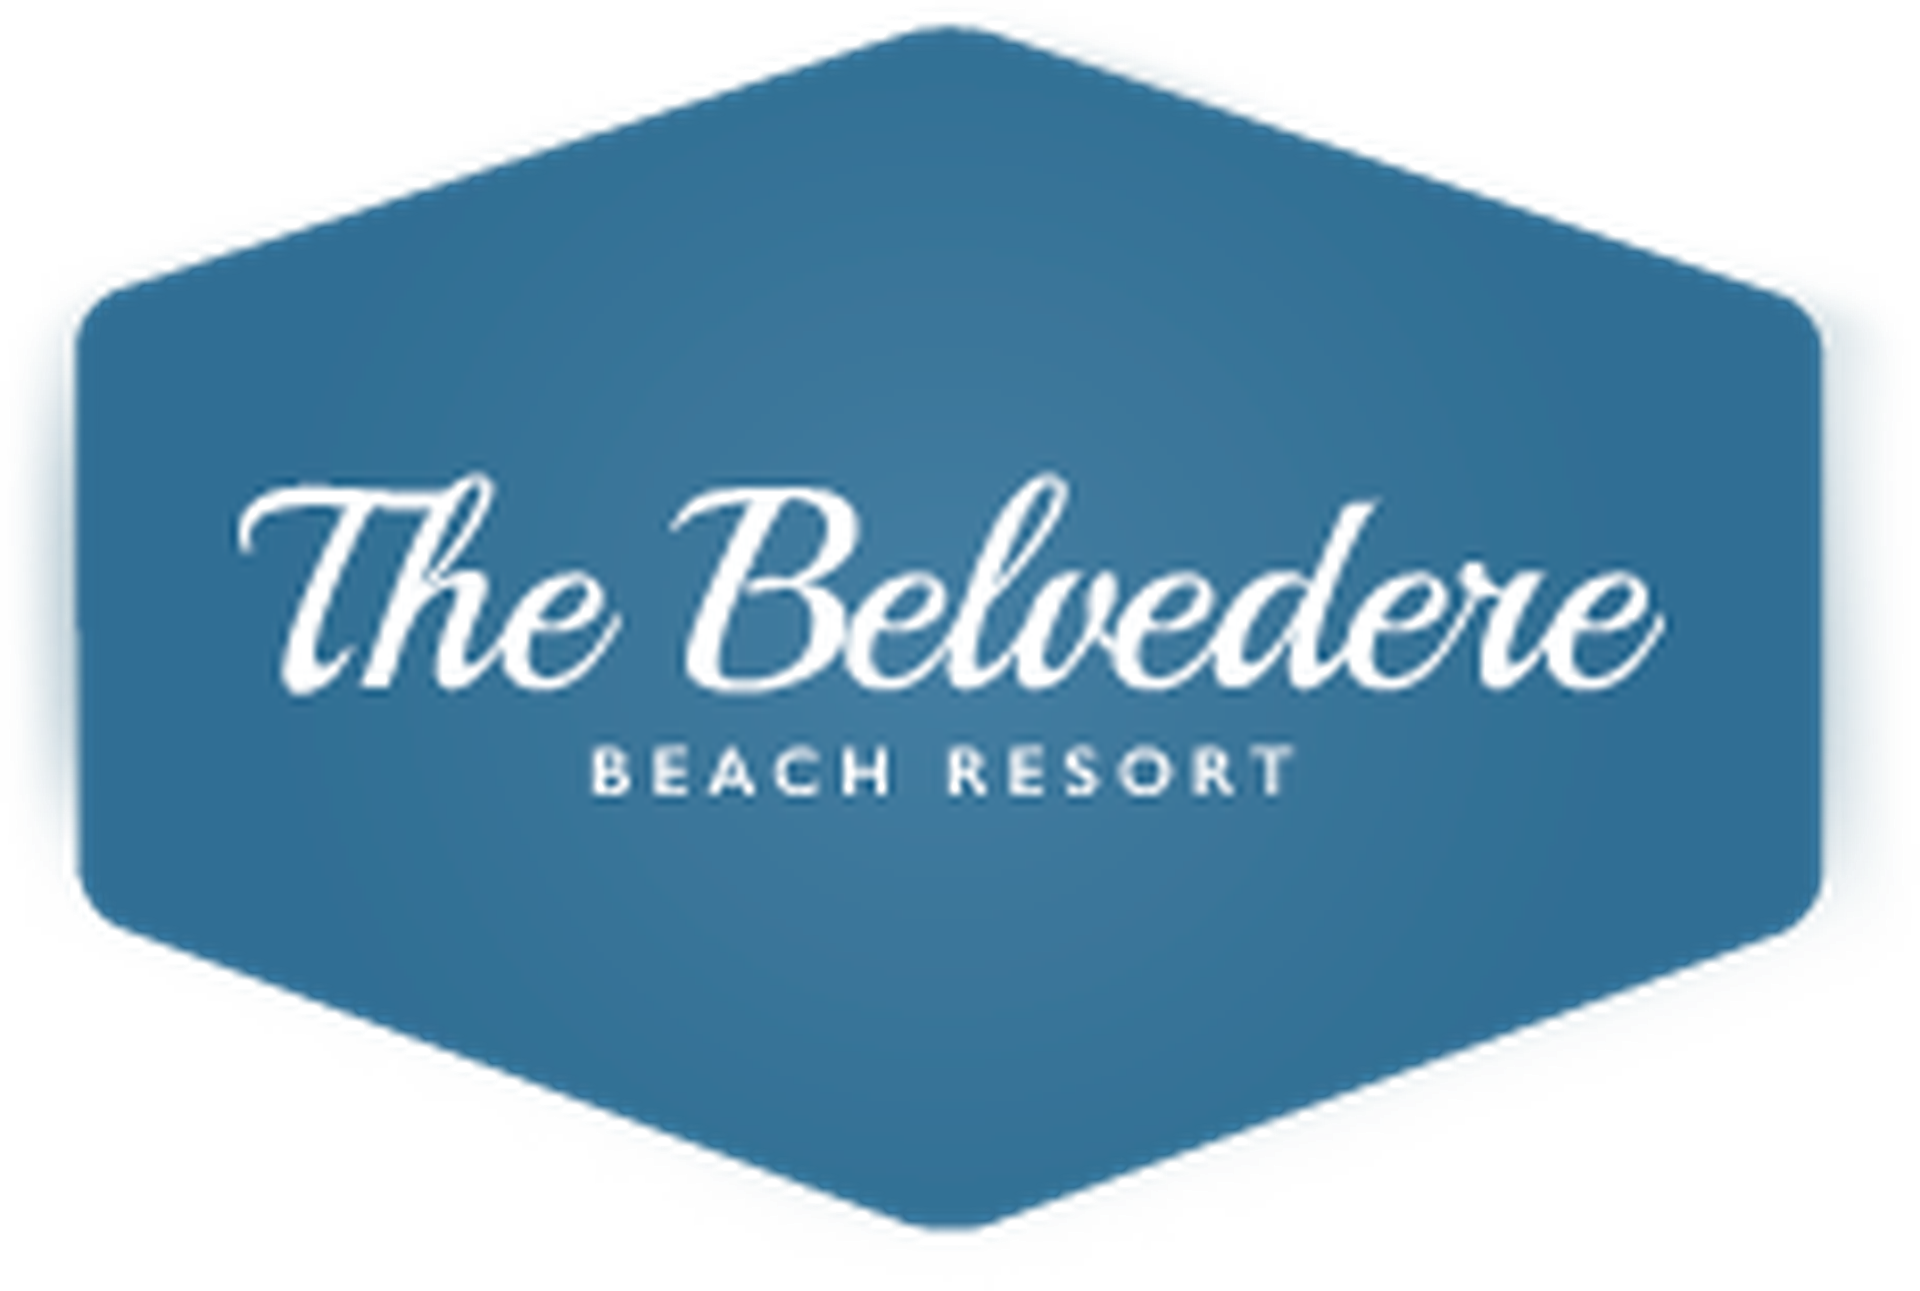 Belvedere Beach Resort